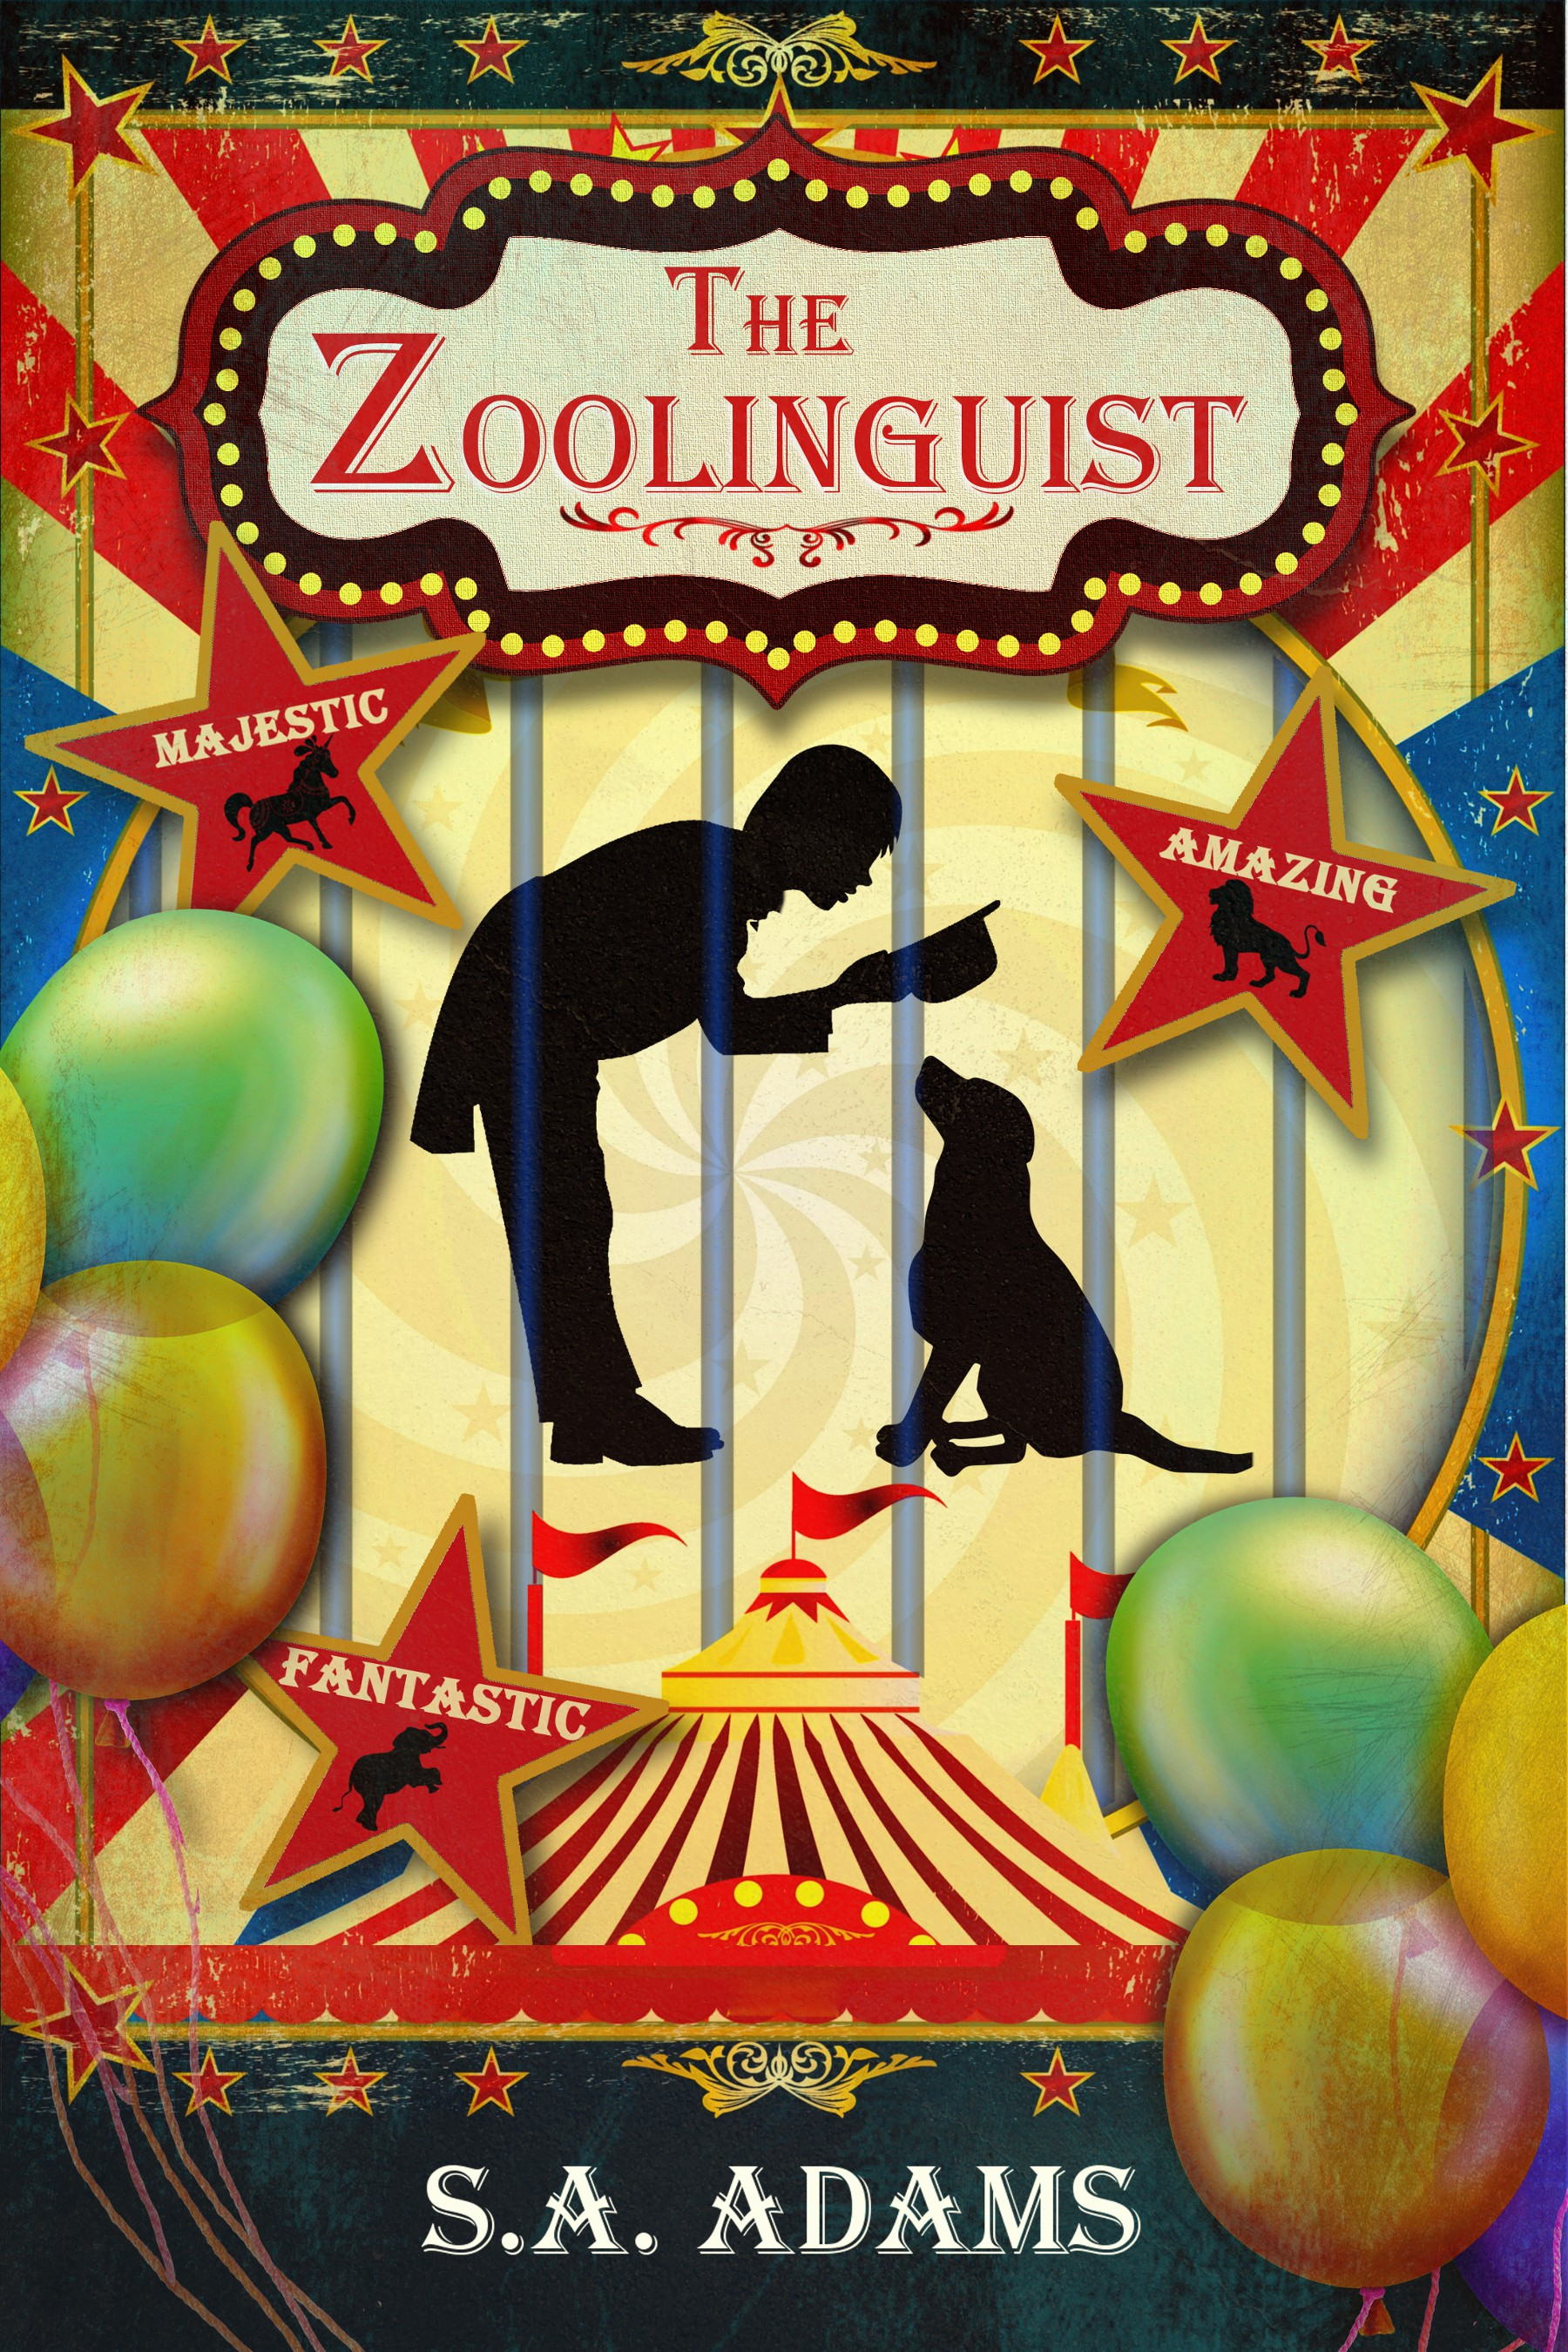 Colorful Vintage Circus Style E-book Cover